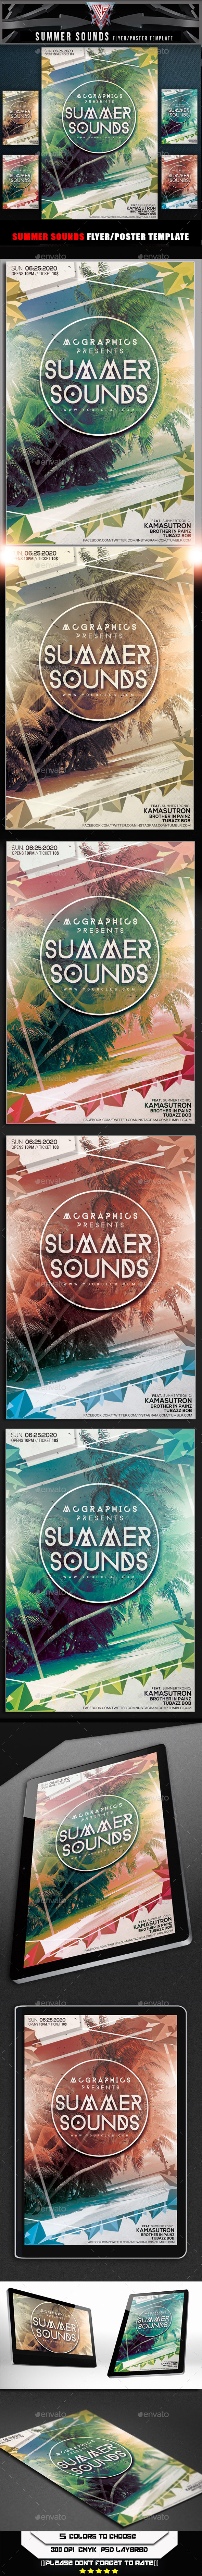 GraphicRiver Summer Sounds Flyer Template 10369891